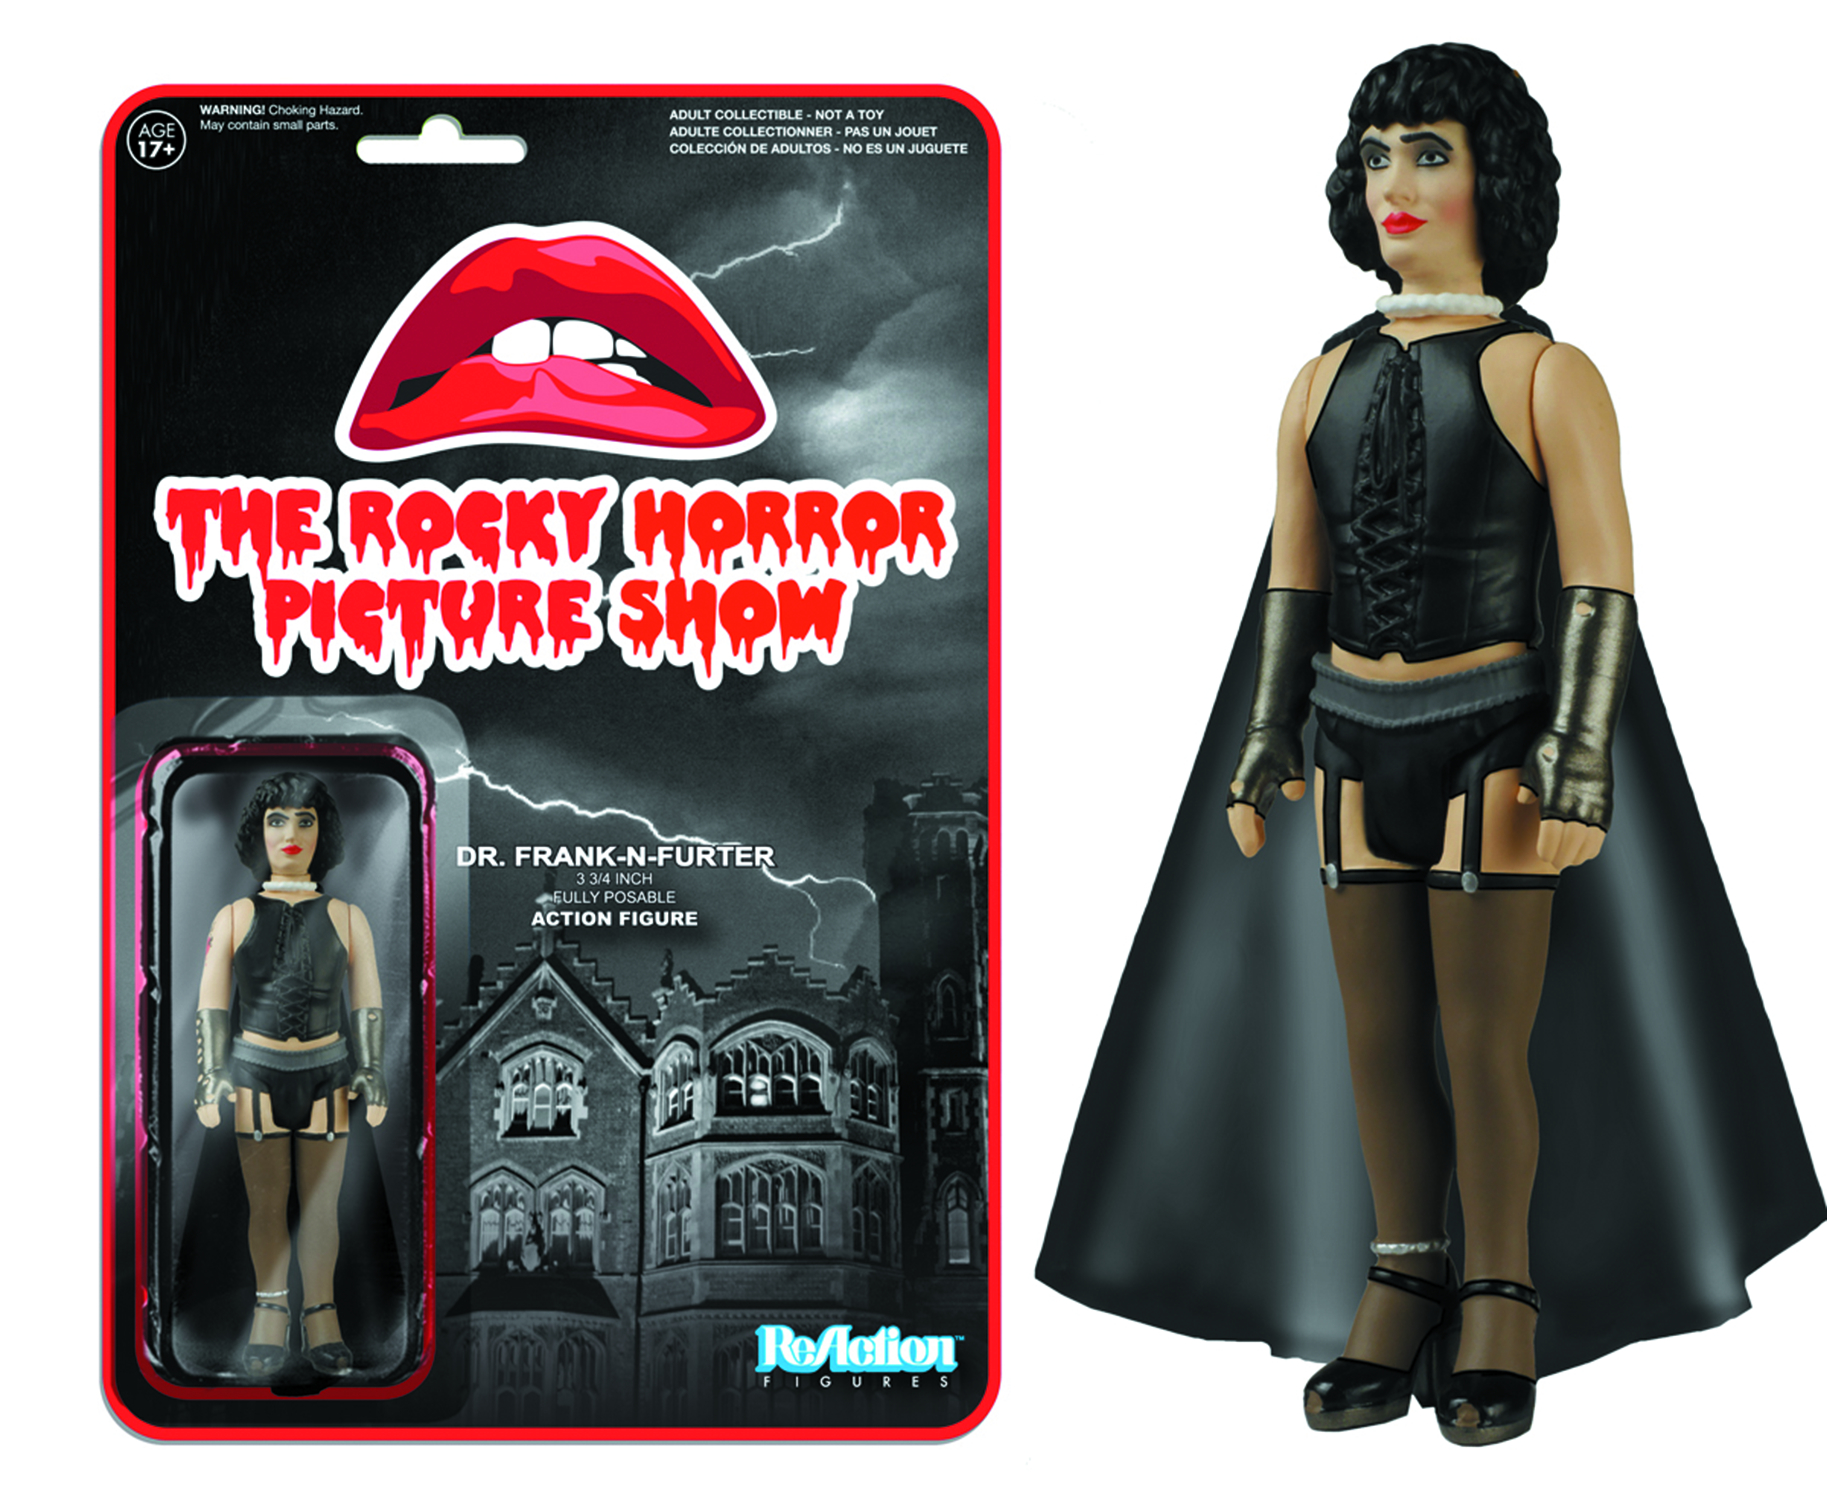 REACTION ROCKY HORROR FRANK N FURTER FIG